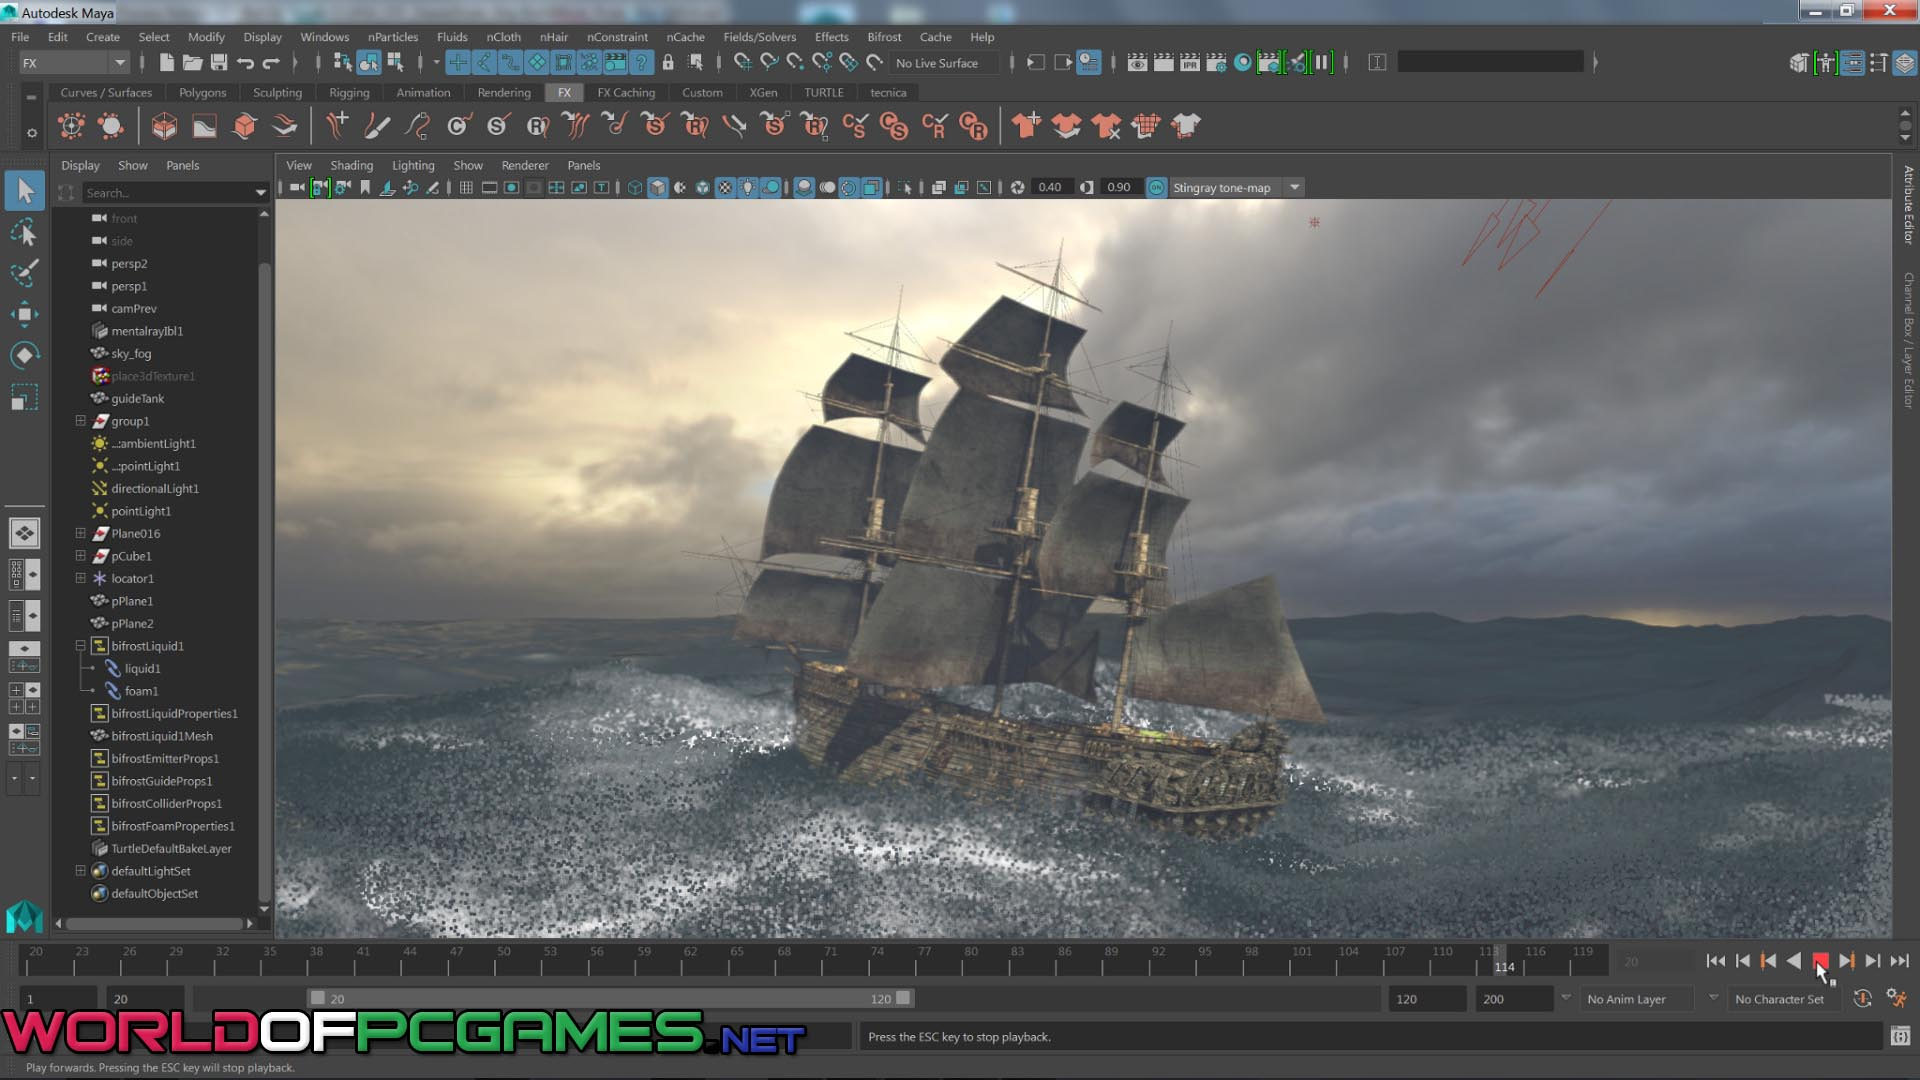 Autodesk Maya 2019 Download Free